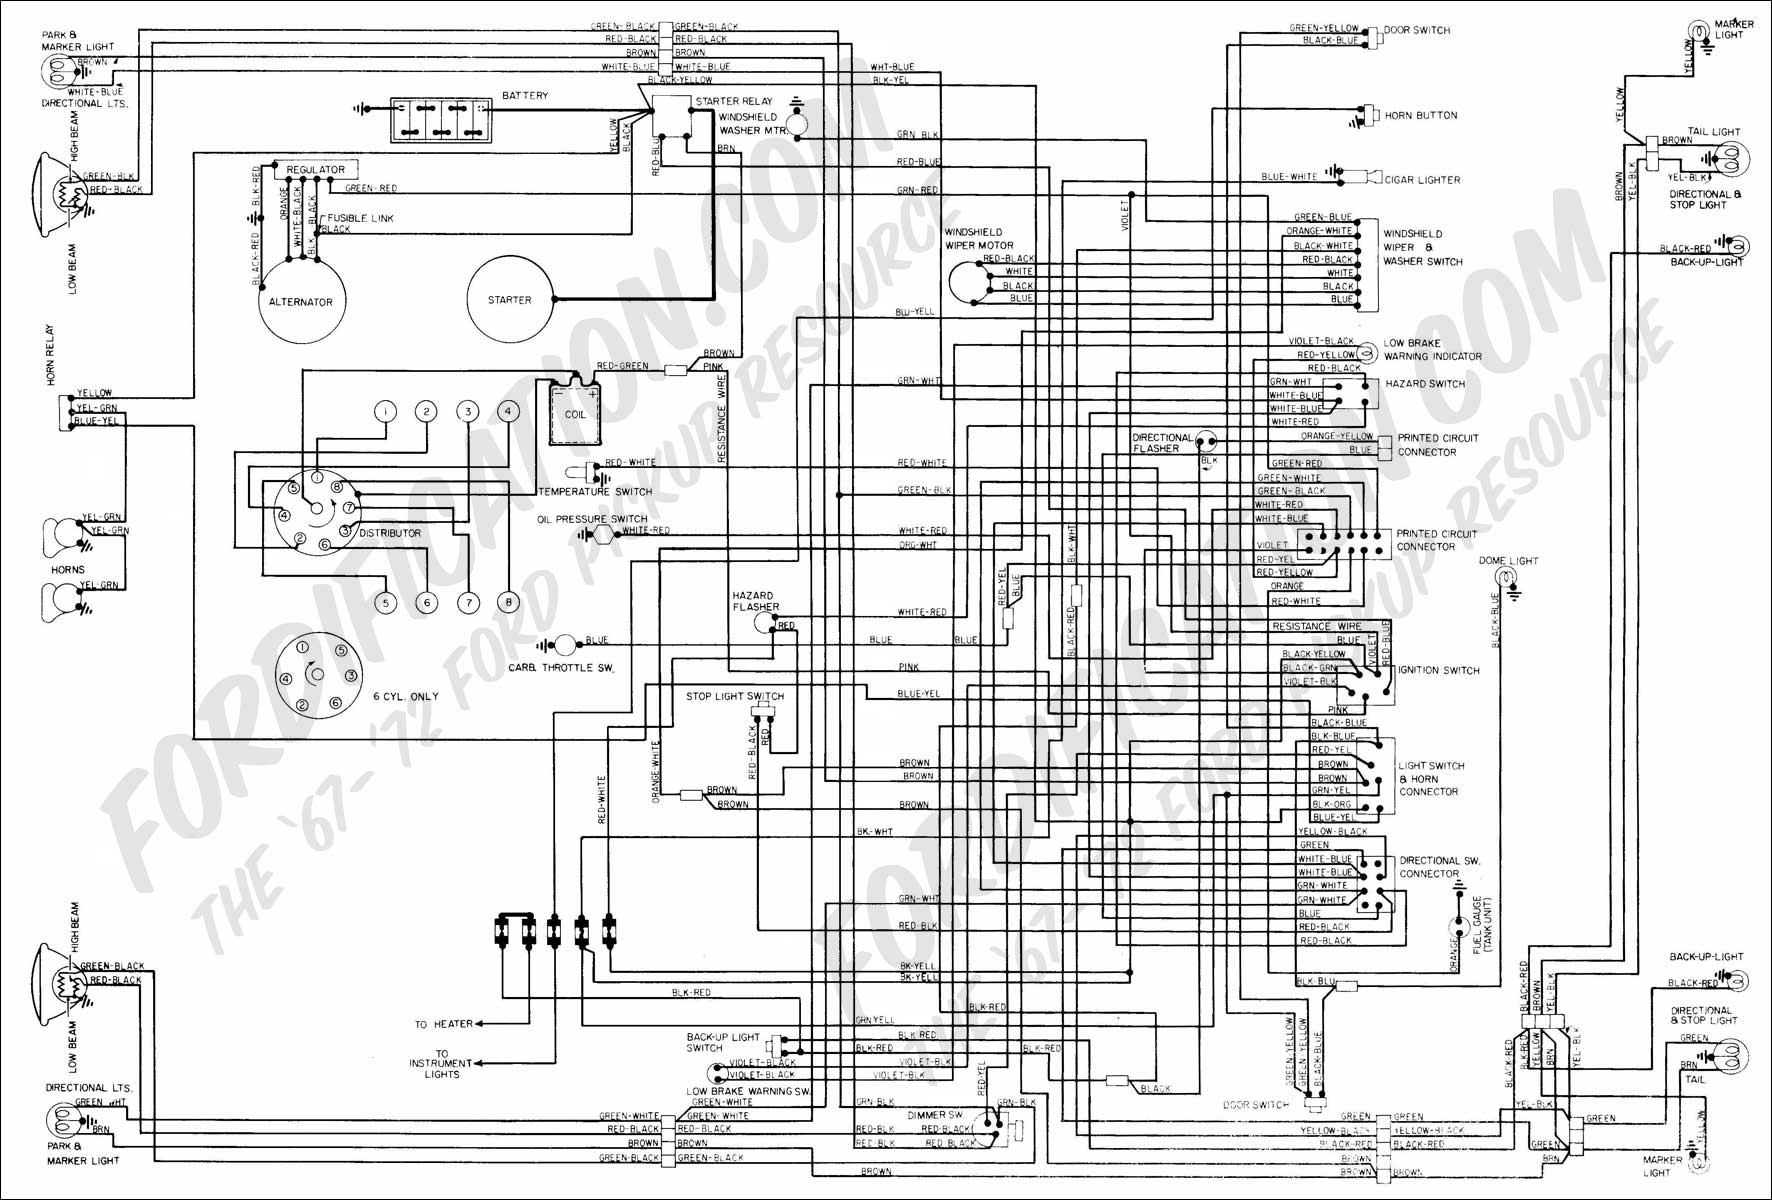 Light Switch Wiring Diagram 1972 Ford Wire Data Schema For Multiple Switched Outlets Truck Technical Drawings And Schematics Section H Rh Fordification Com 2 Way Diagrams